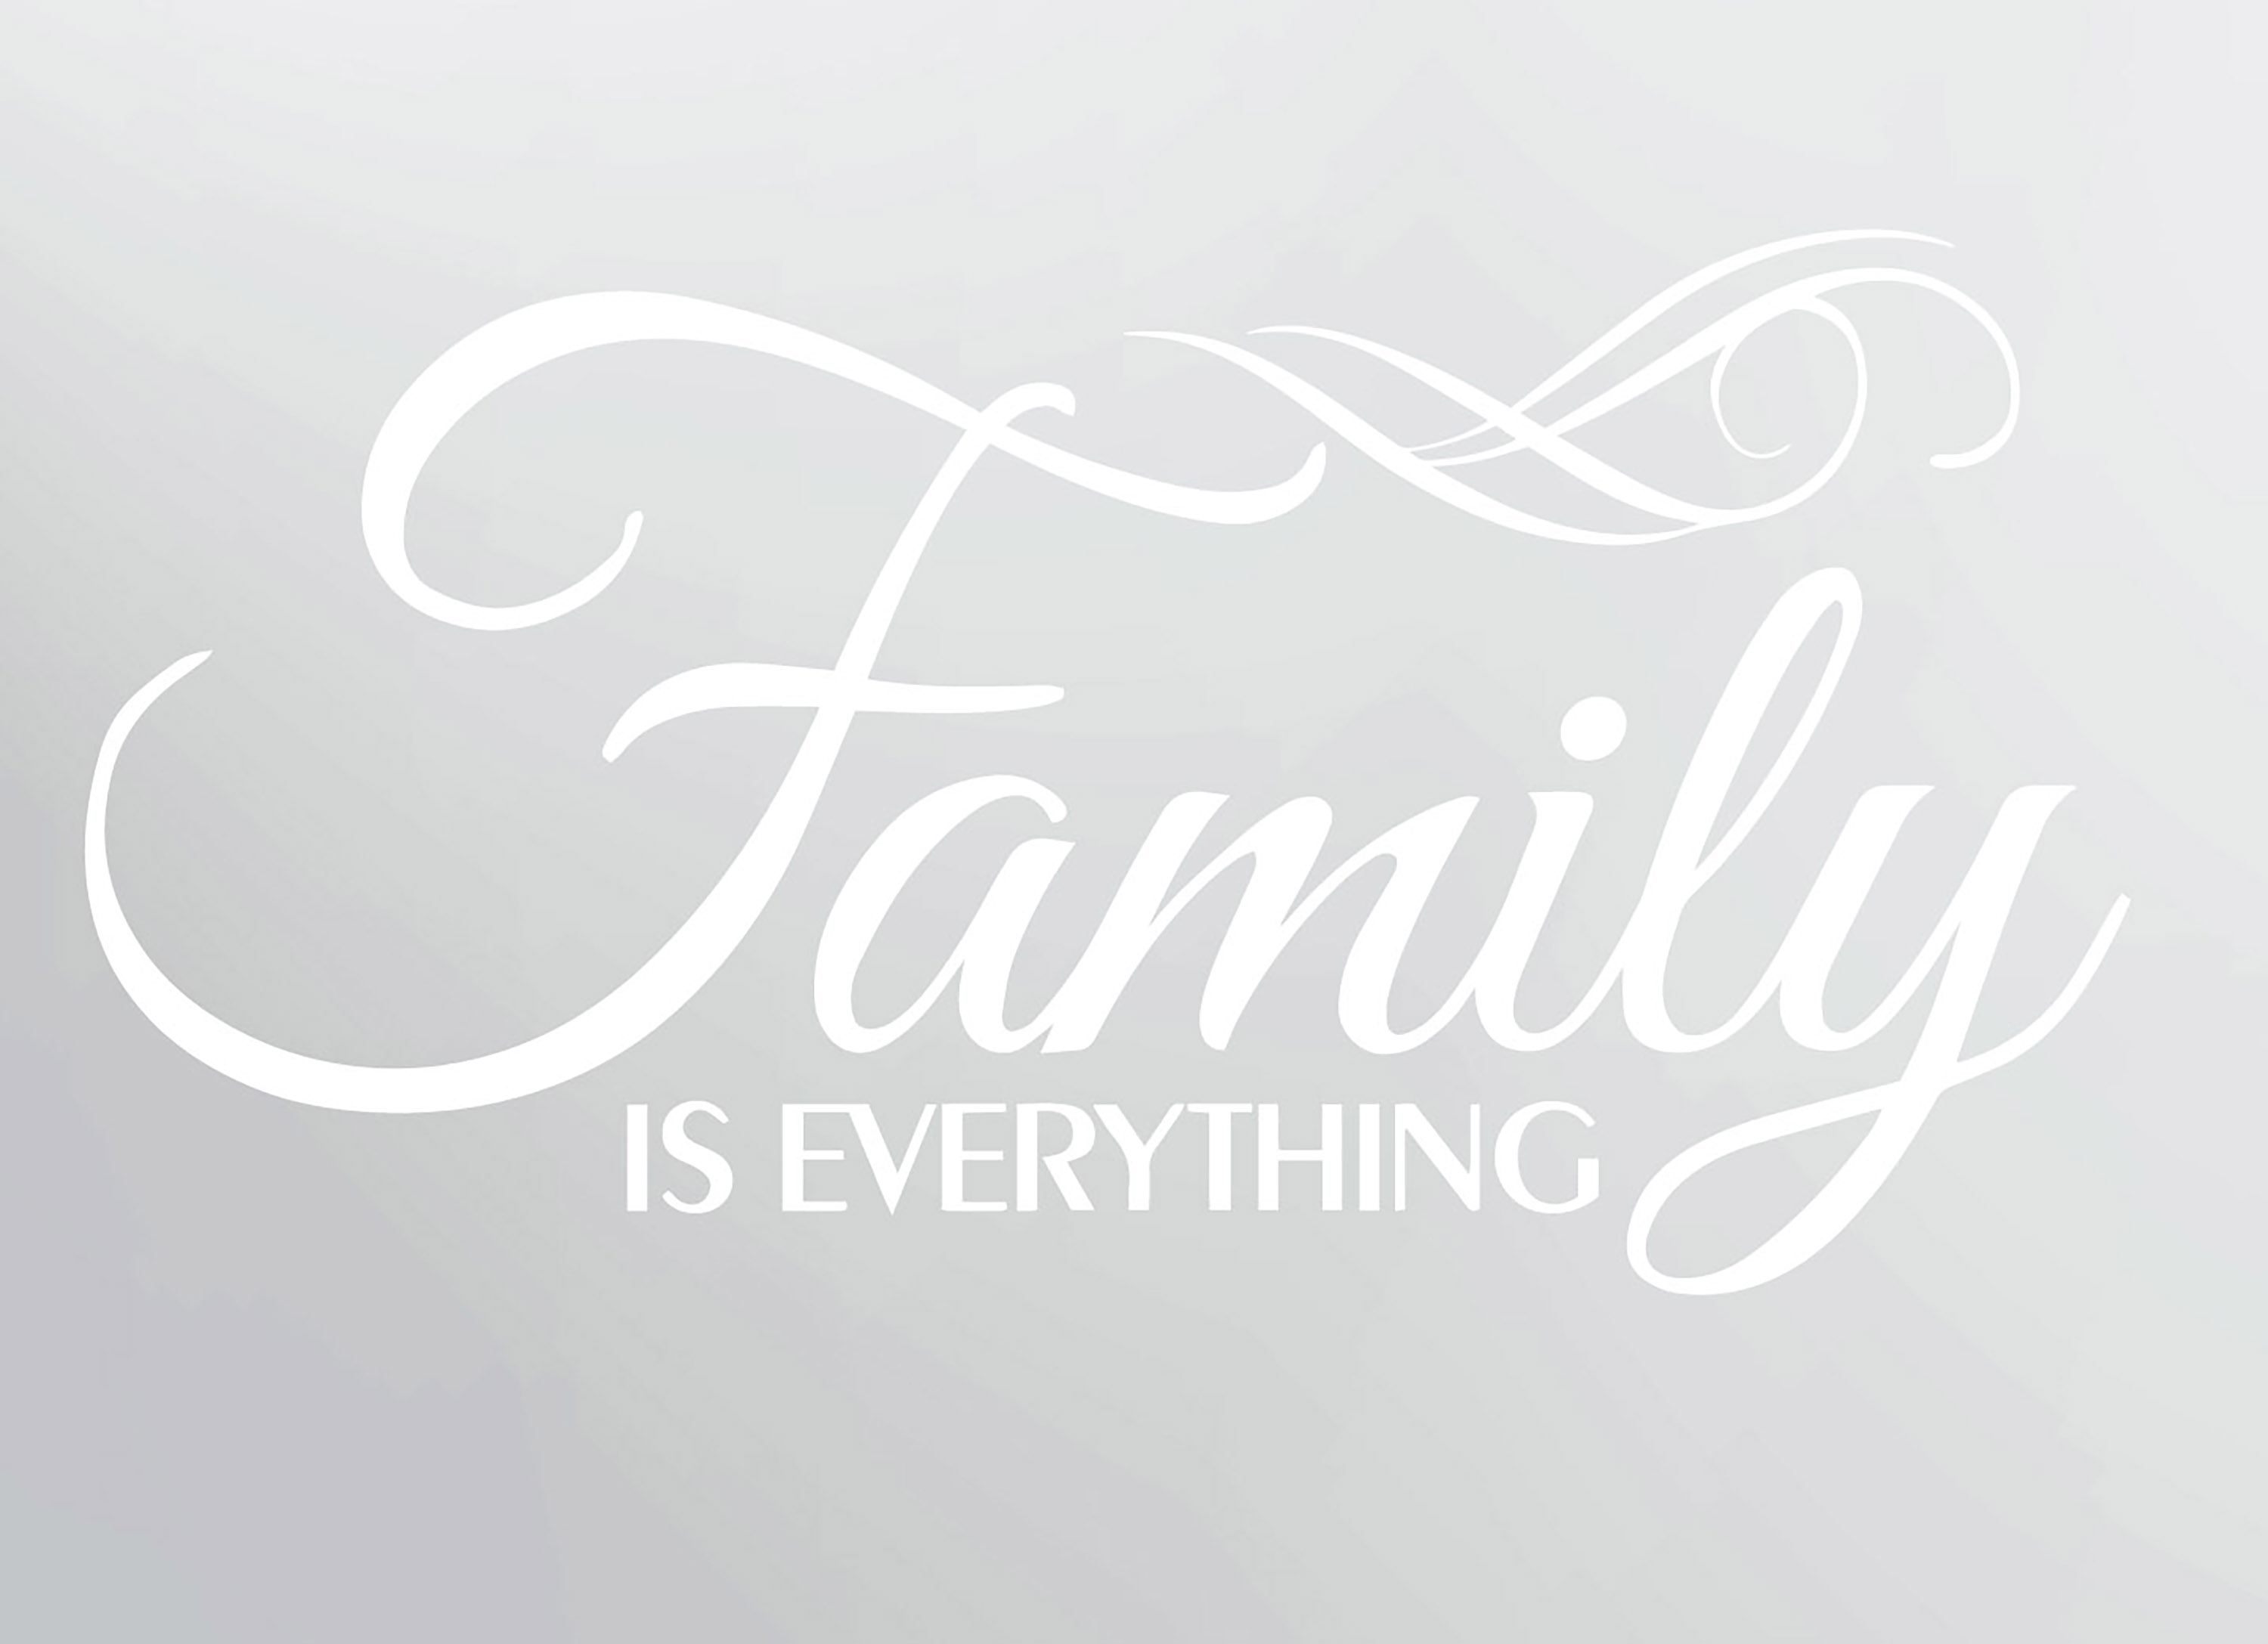 family-is-everything-wall-decal-white.jpg